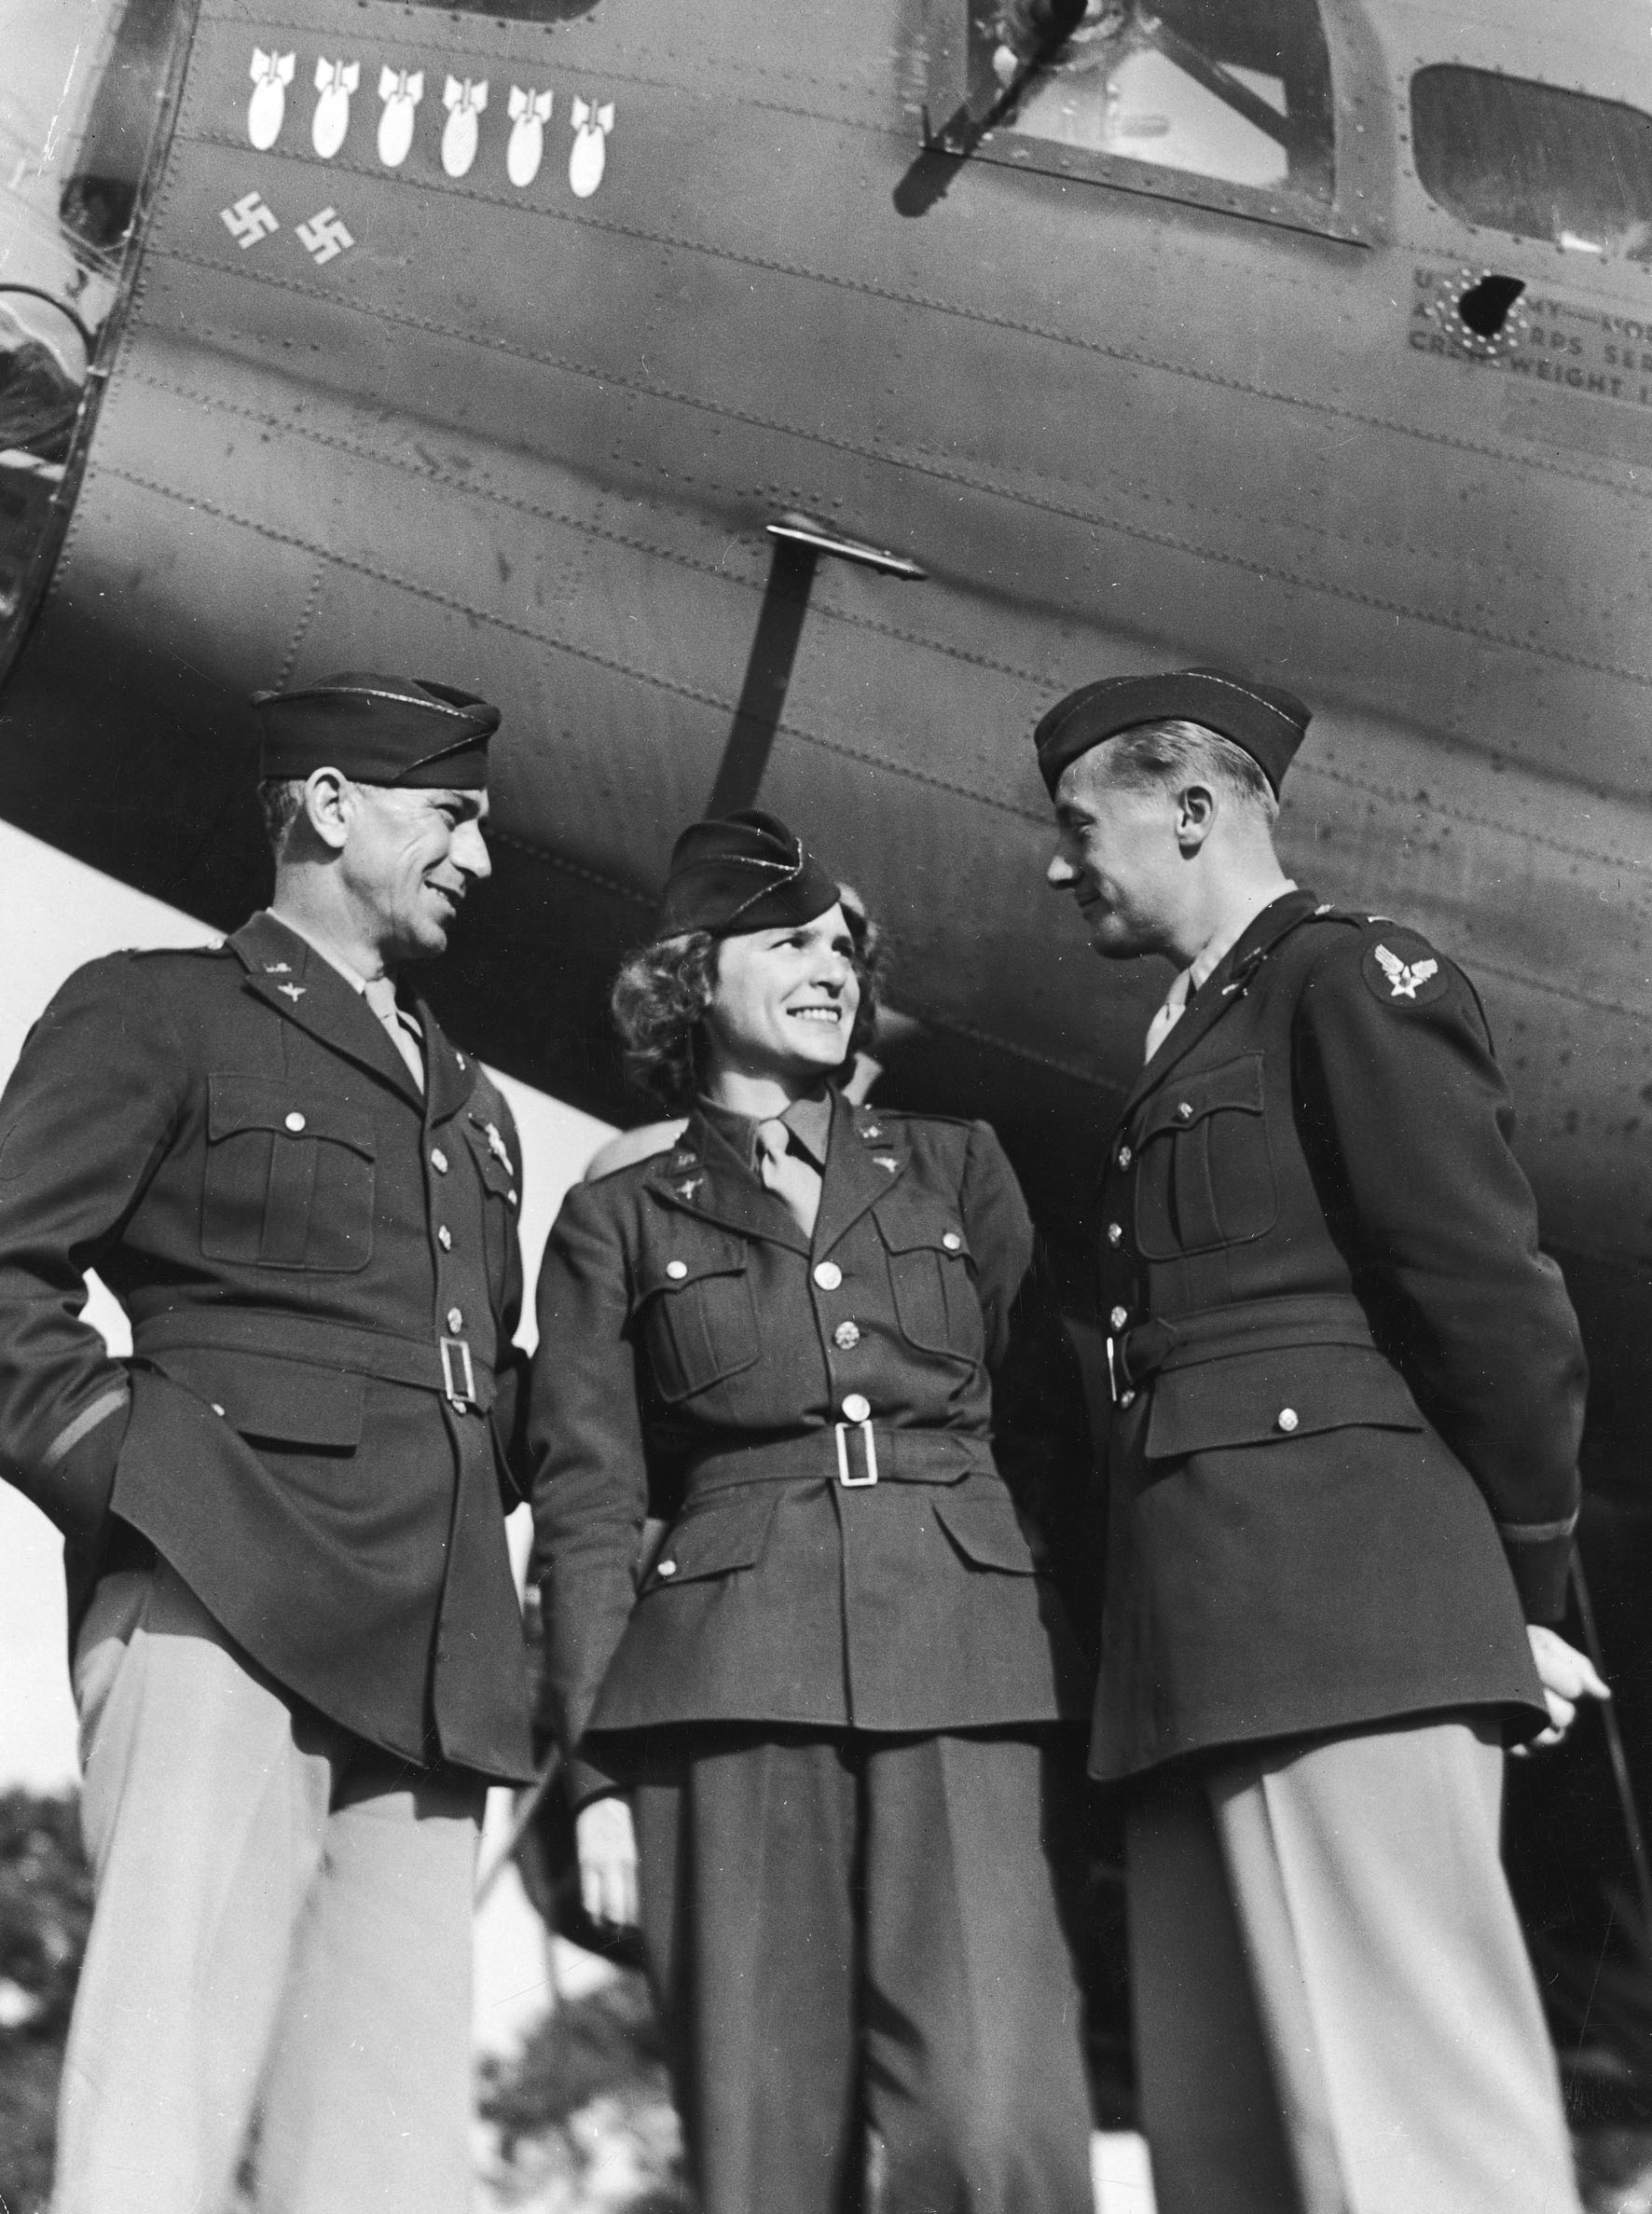 Margaret Bourke-White in an Air Force uniform with officers of the 8th Bomber CommandHoward Greenberg Gallery, New York © Time & Life / Getty Images